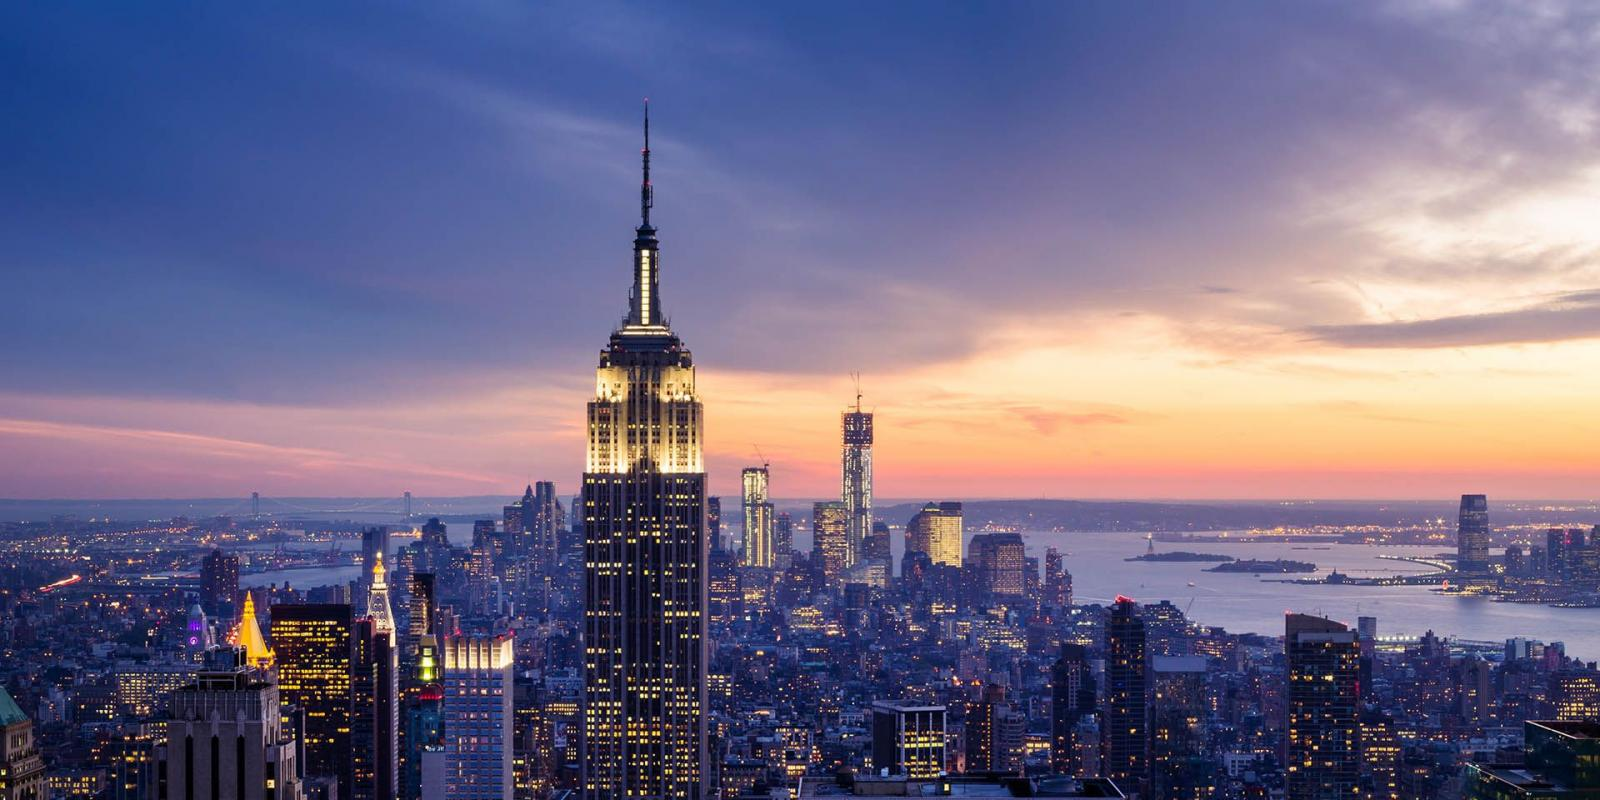 empire state building abends